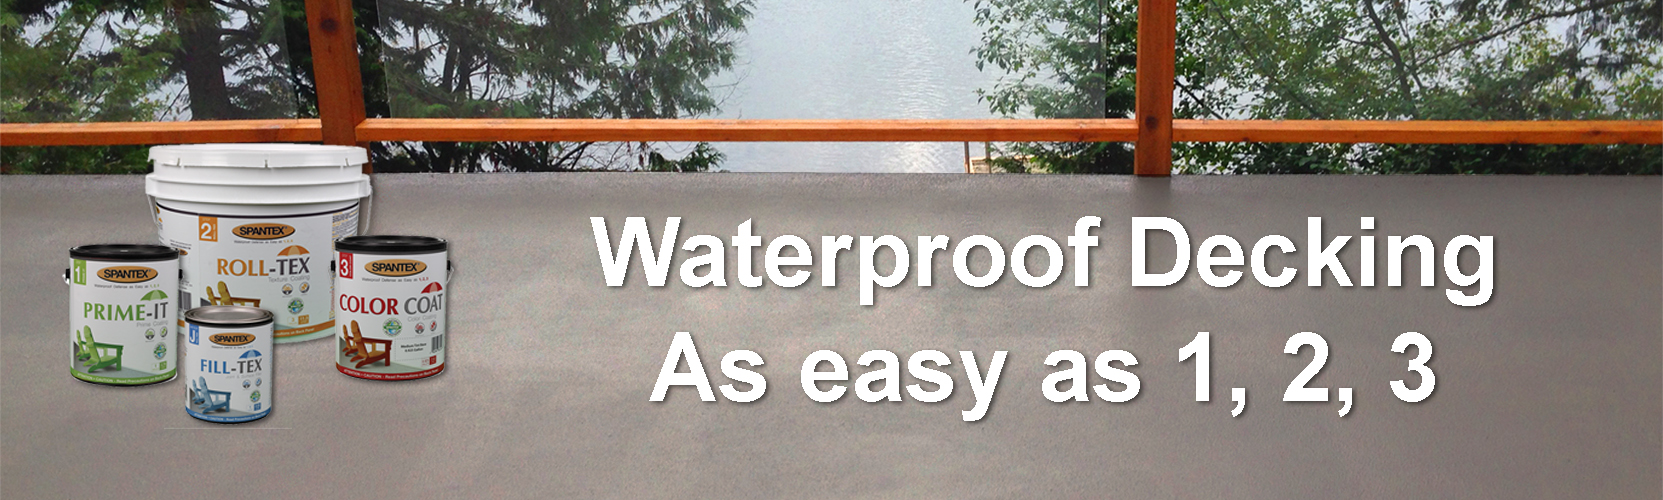 Spantex - Waterproof Deck Coating